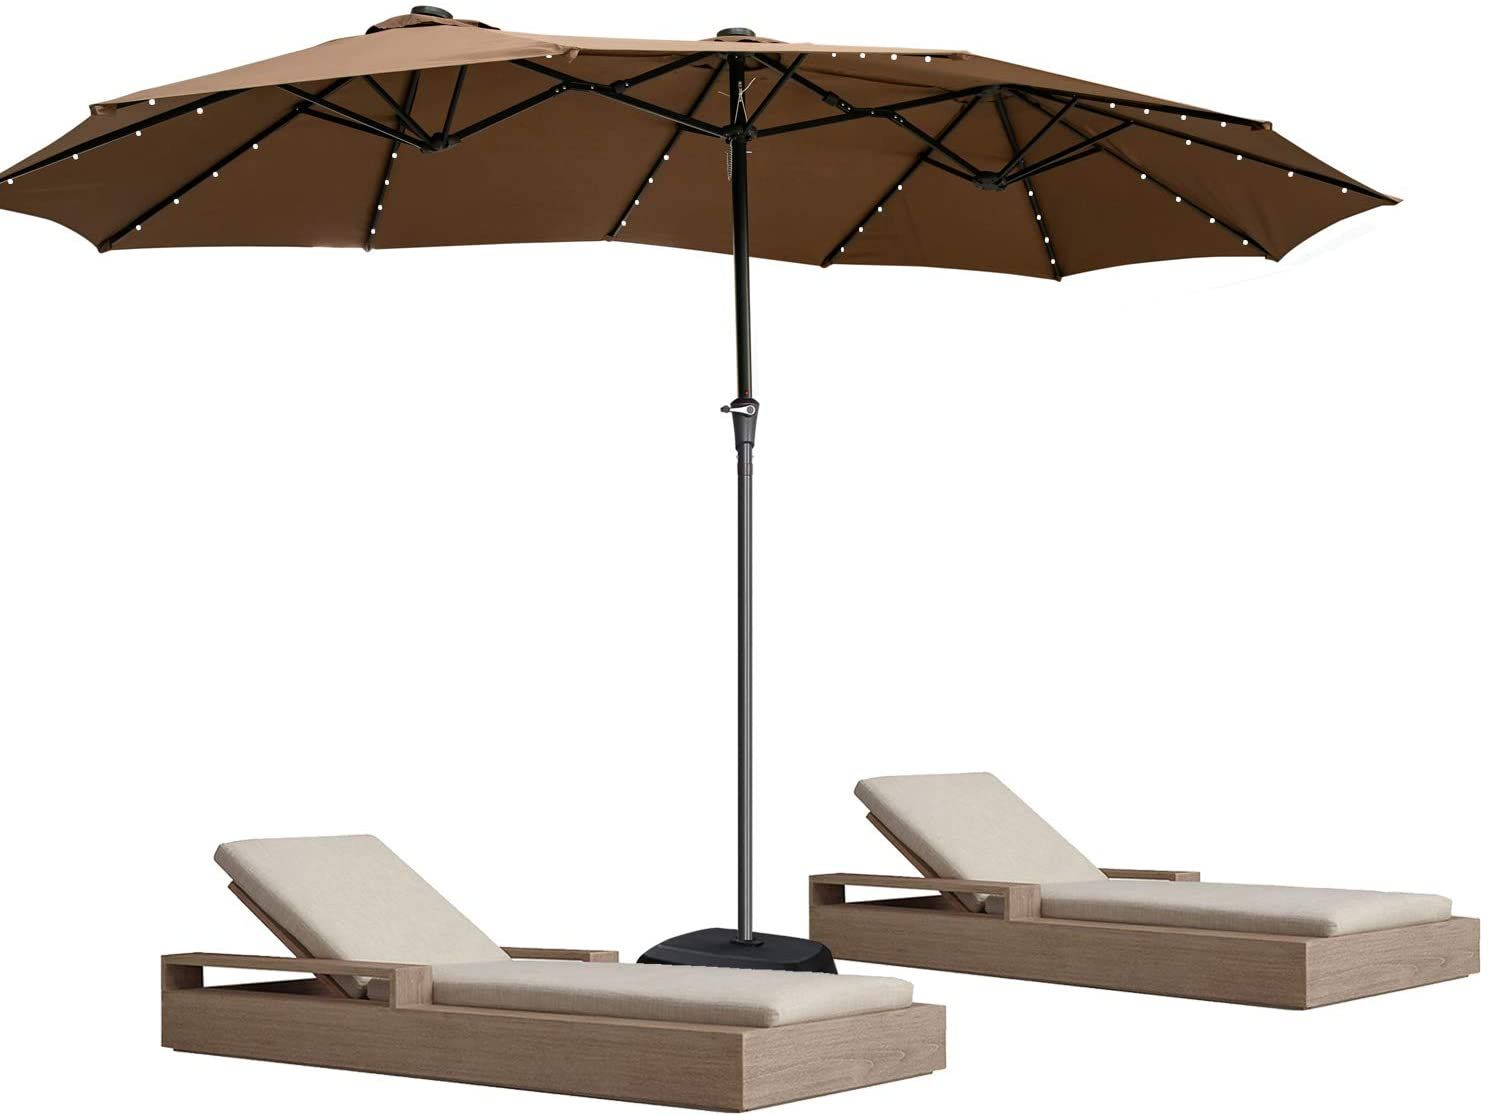 Double Sided Umbrella With Led 15 Ft Large Patio Umbrella Outdoor Twin Umbrella Umbrellas Doit